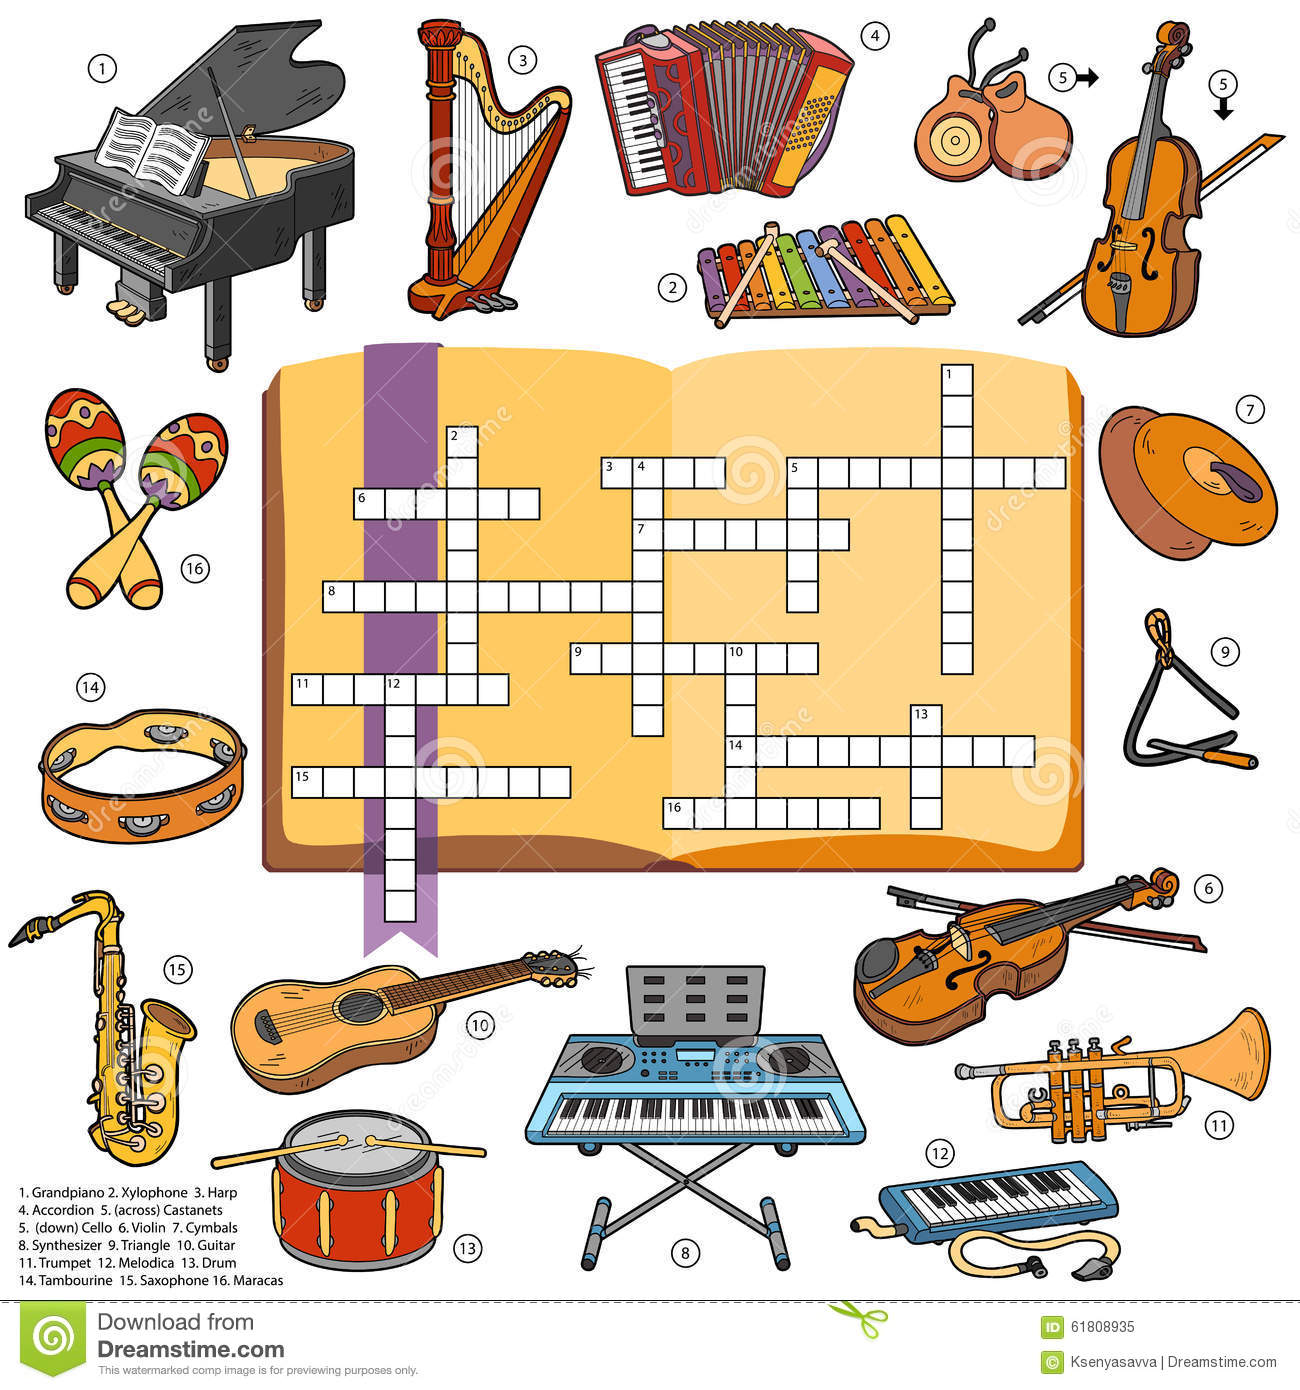 Color Crossword Game For Children About Music Instruments